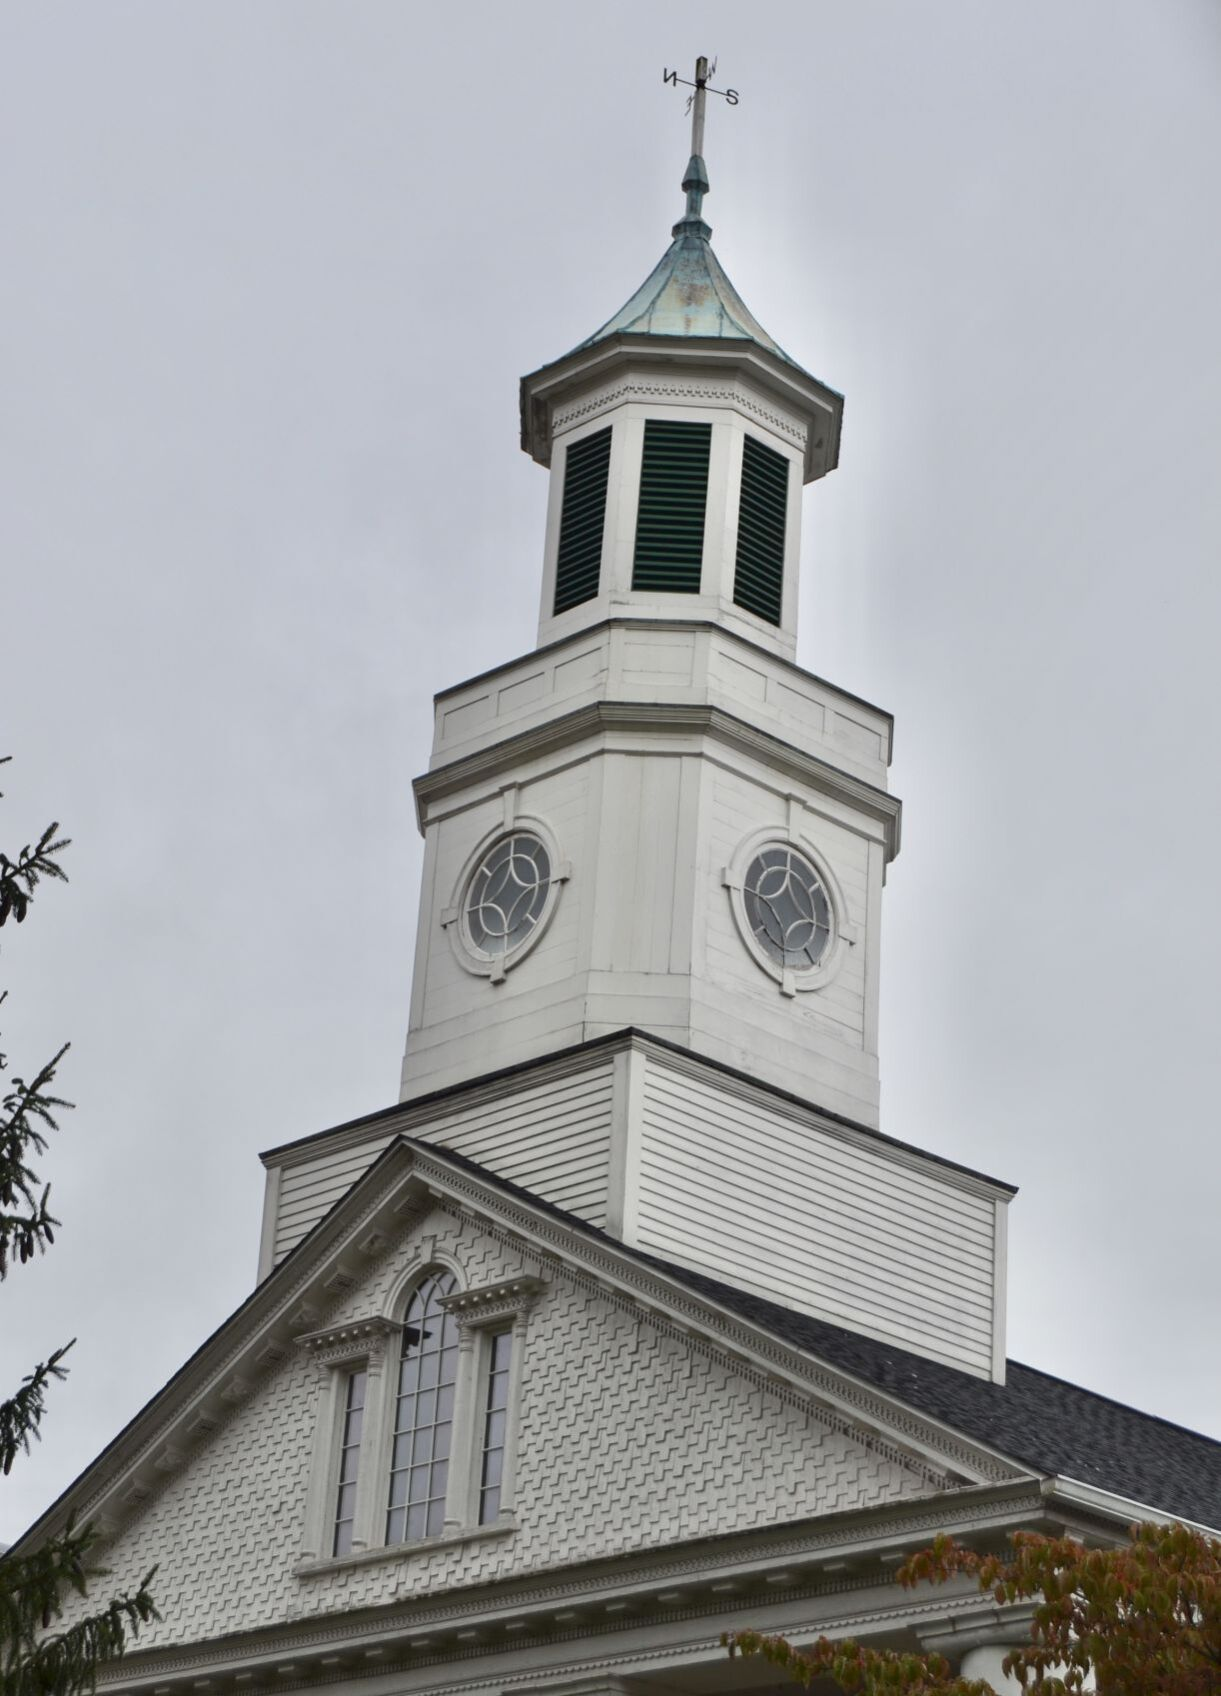 Window falls out of historic Courthouse steeple: Repairs estimated at $18k